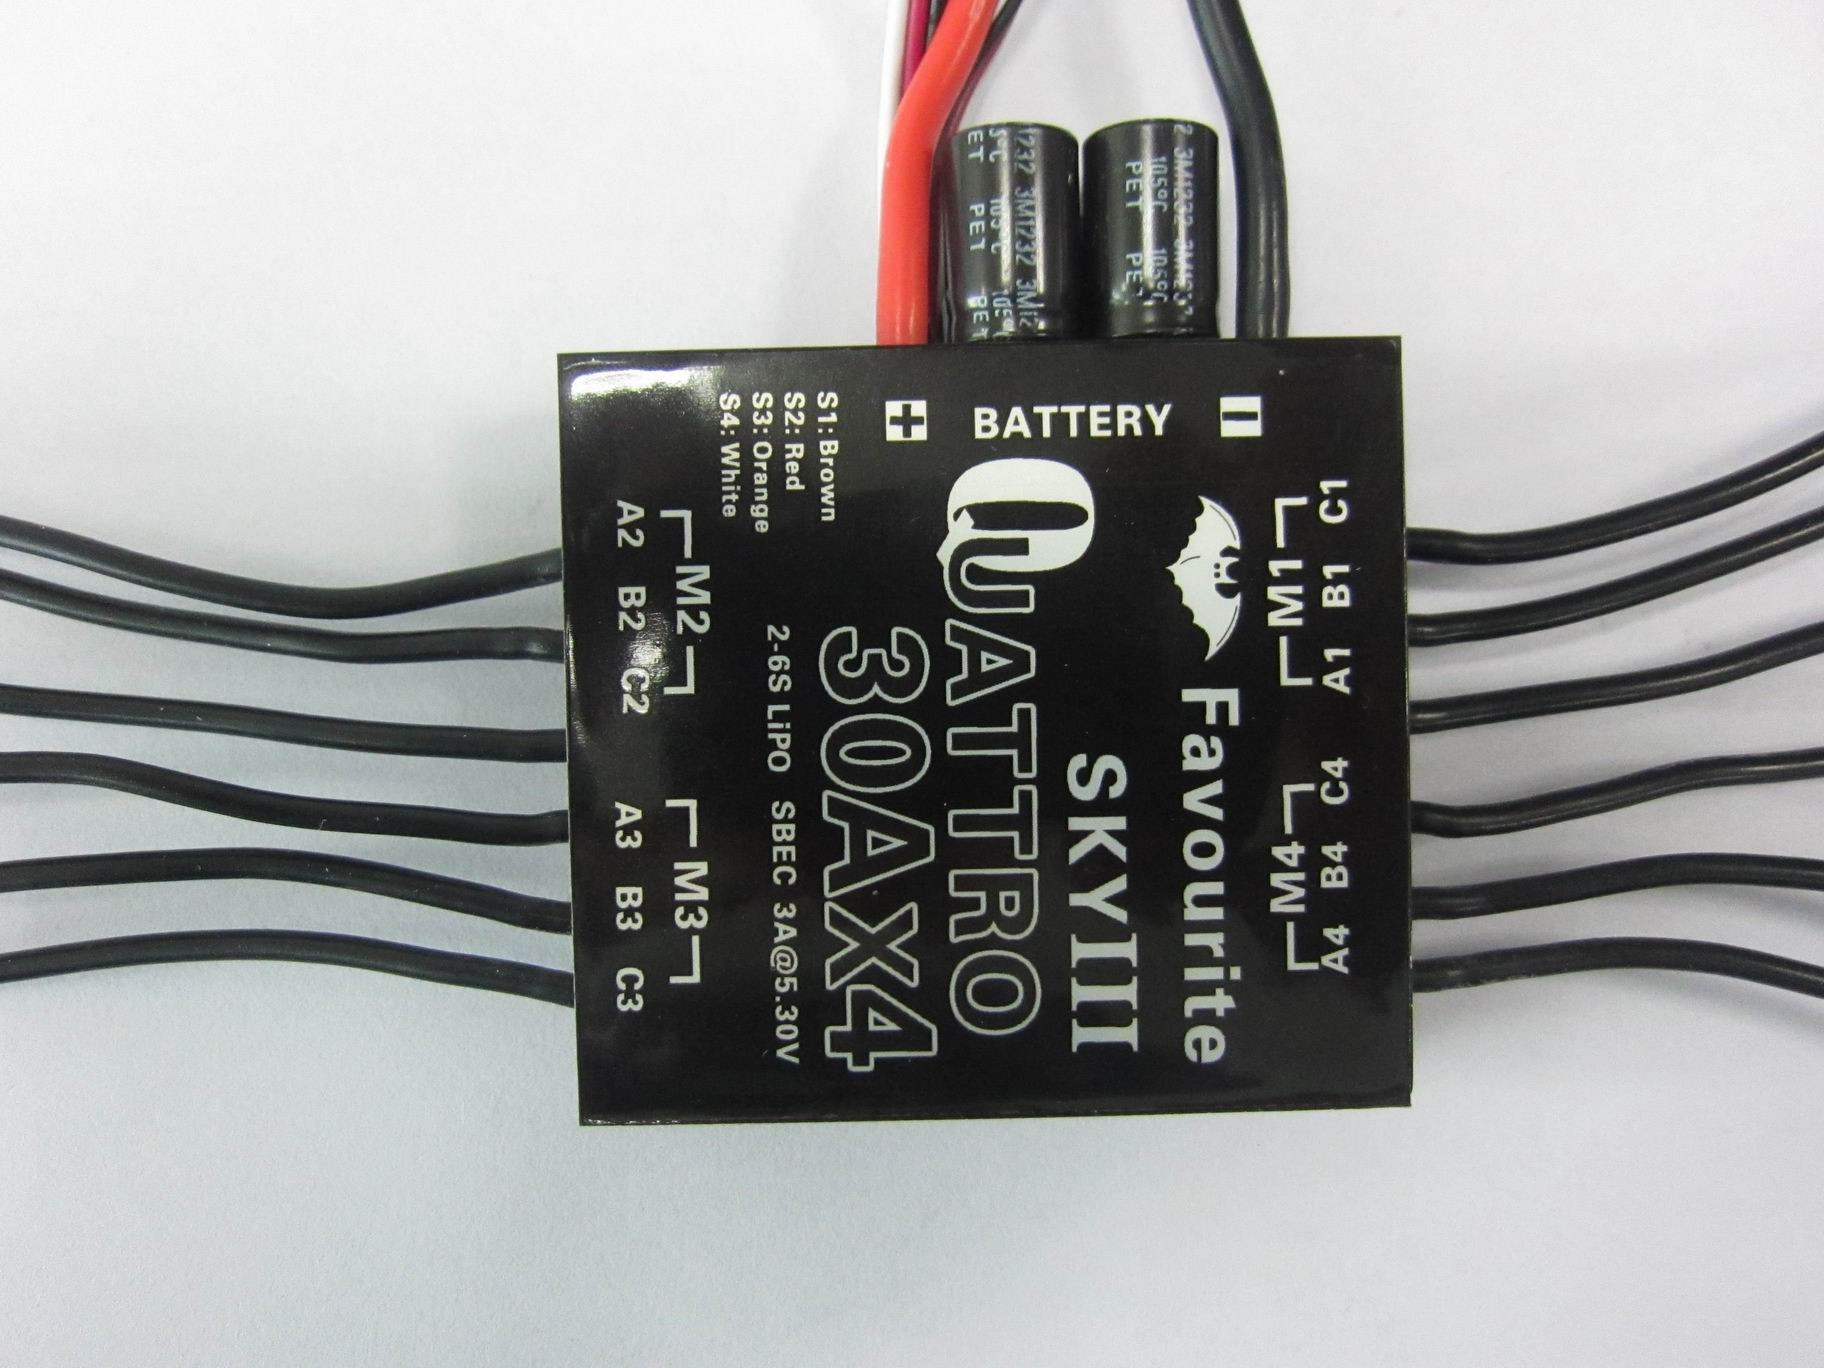 4-in-1 Multirotor ESC 30A x 4 2S-6S Free Shipping by DHL\FEDEX